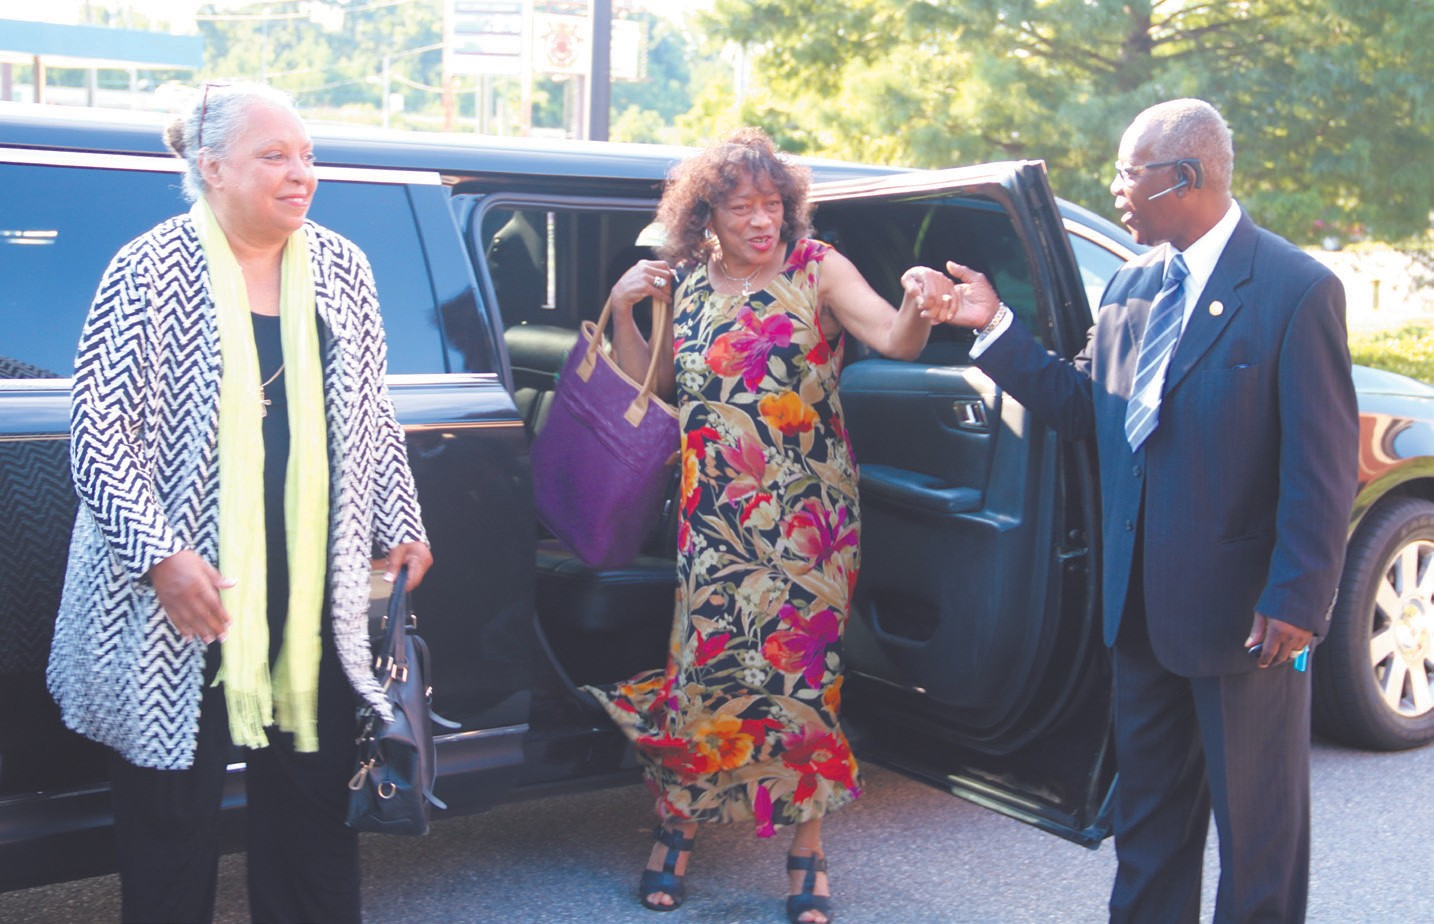 Dr. Carolyn Thomas (L) and Dr. Brenda Cross (R) received VIP treatment from Adams Limousine Service Chauffeur Eugene Artis.